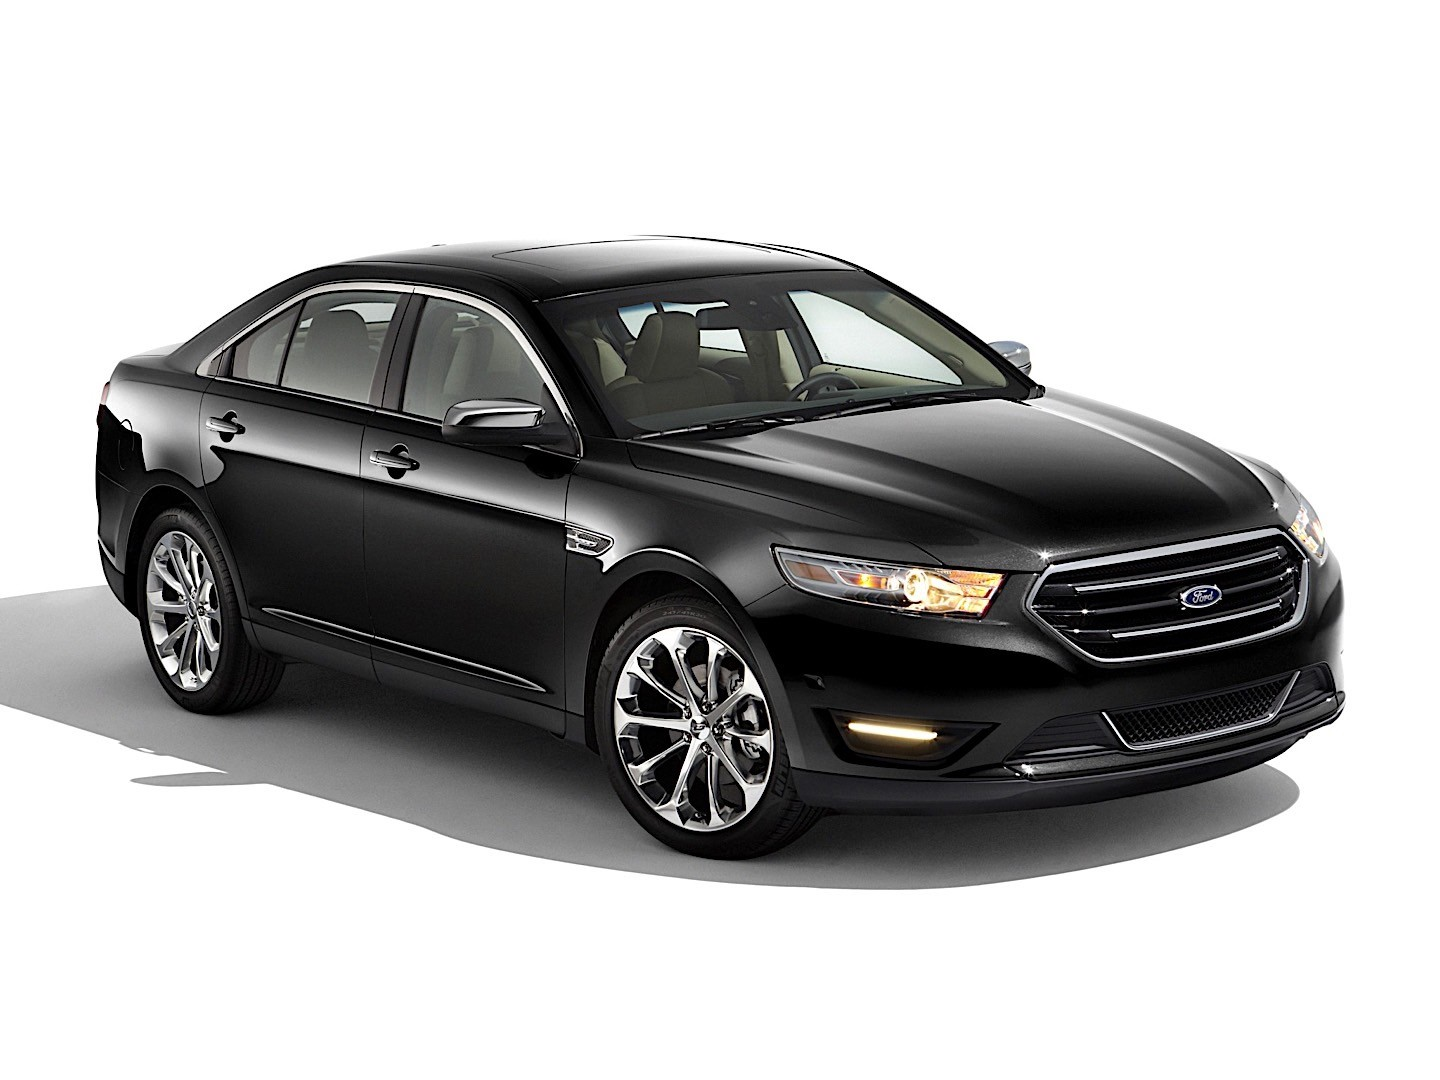 Ford Taurus on 2010 Ford Fusion 2 5 Engine